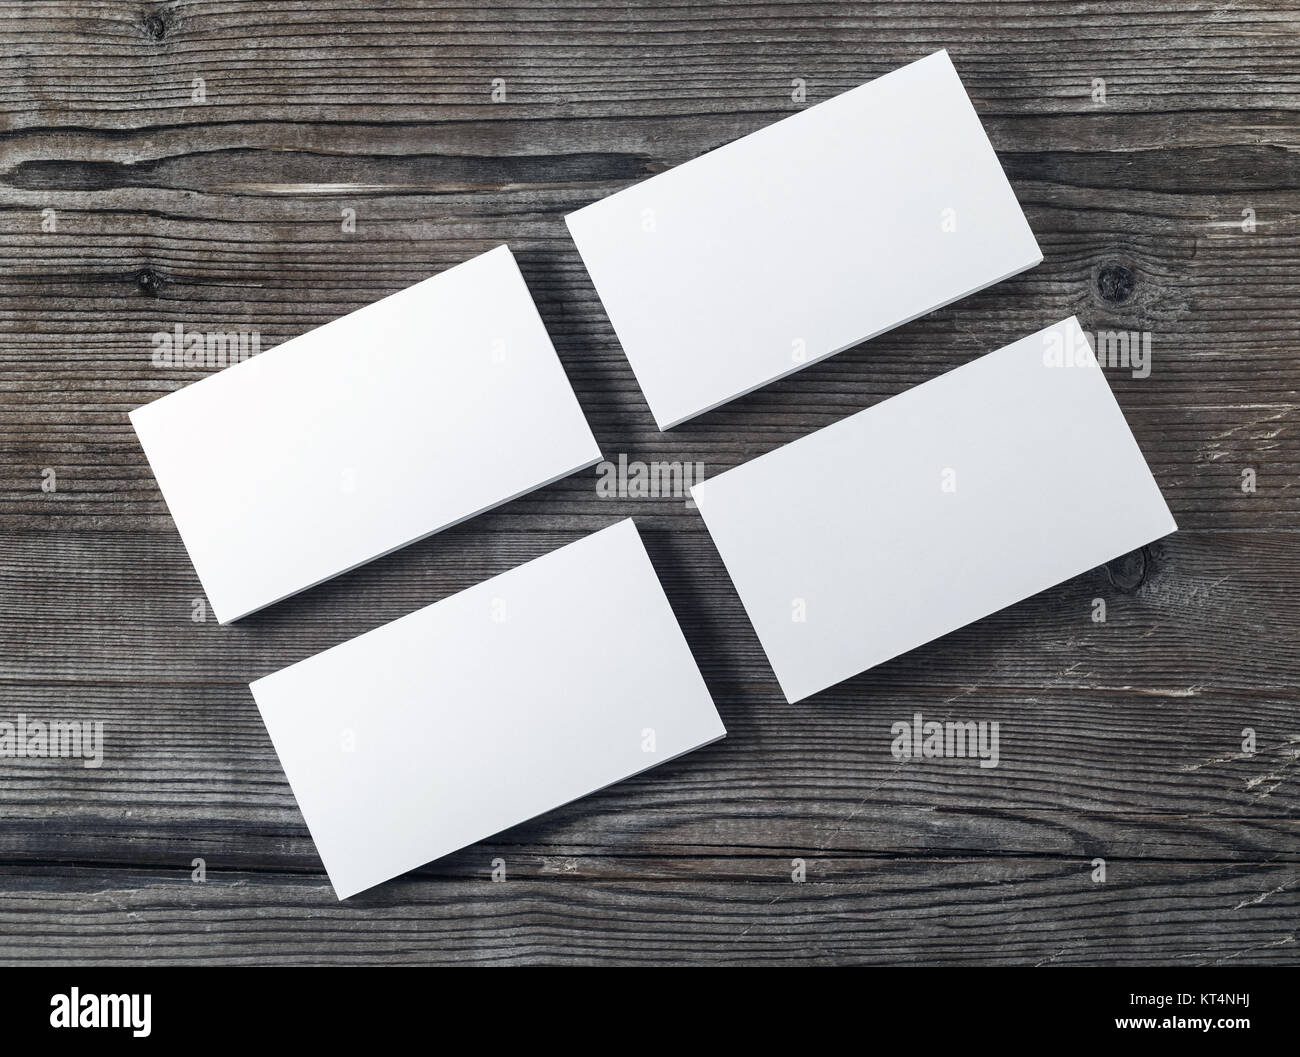 Blank piles of business cards Stock Photo: 169749822 - Alamy